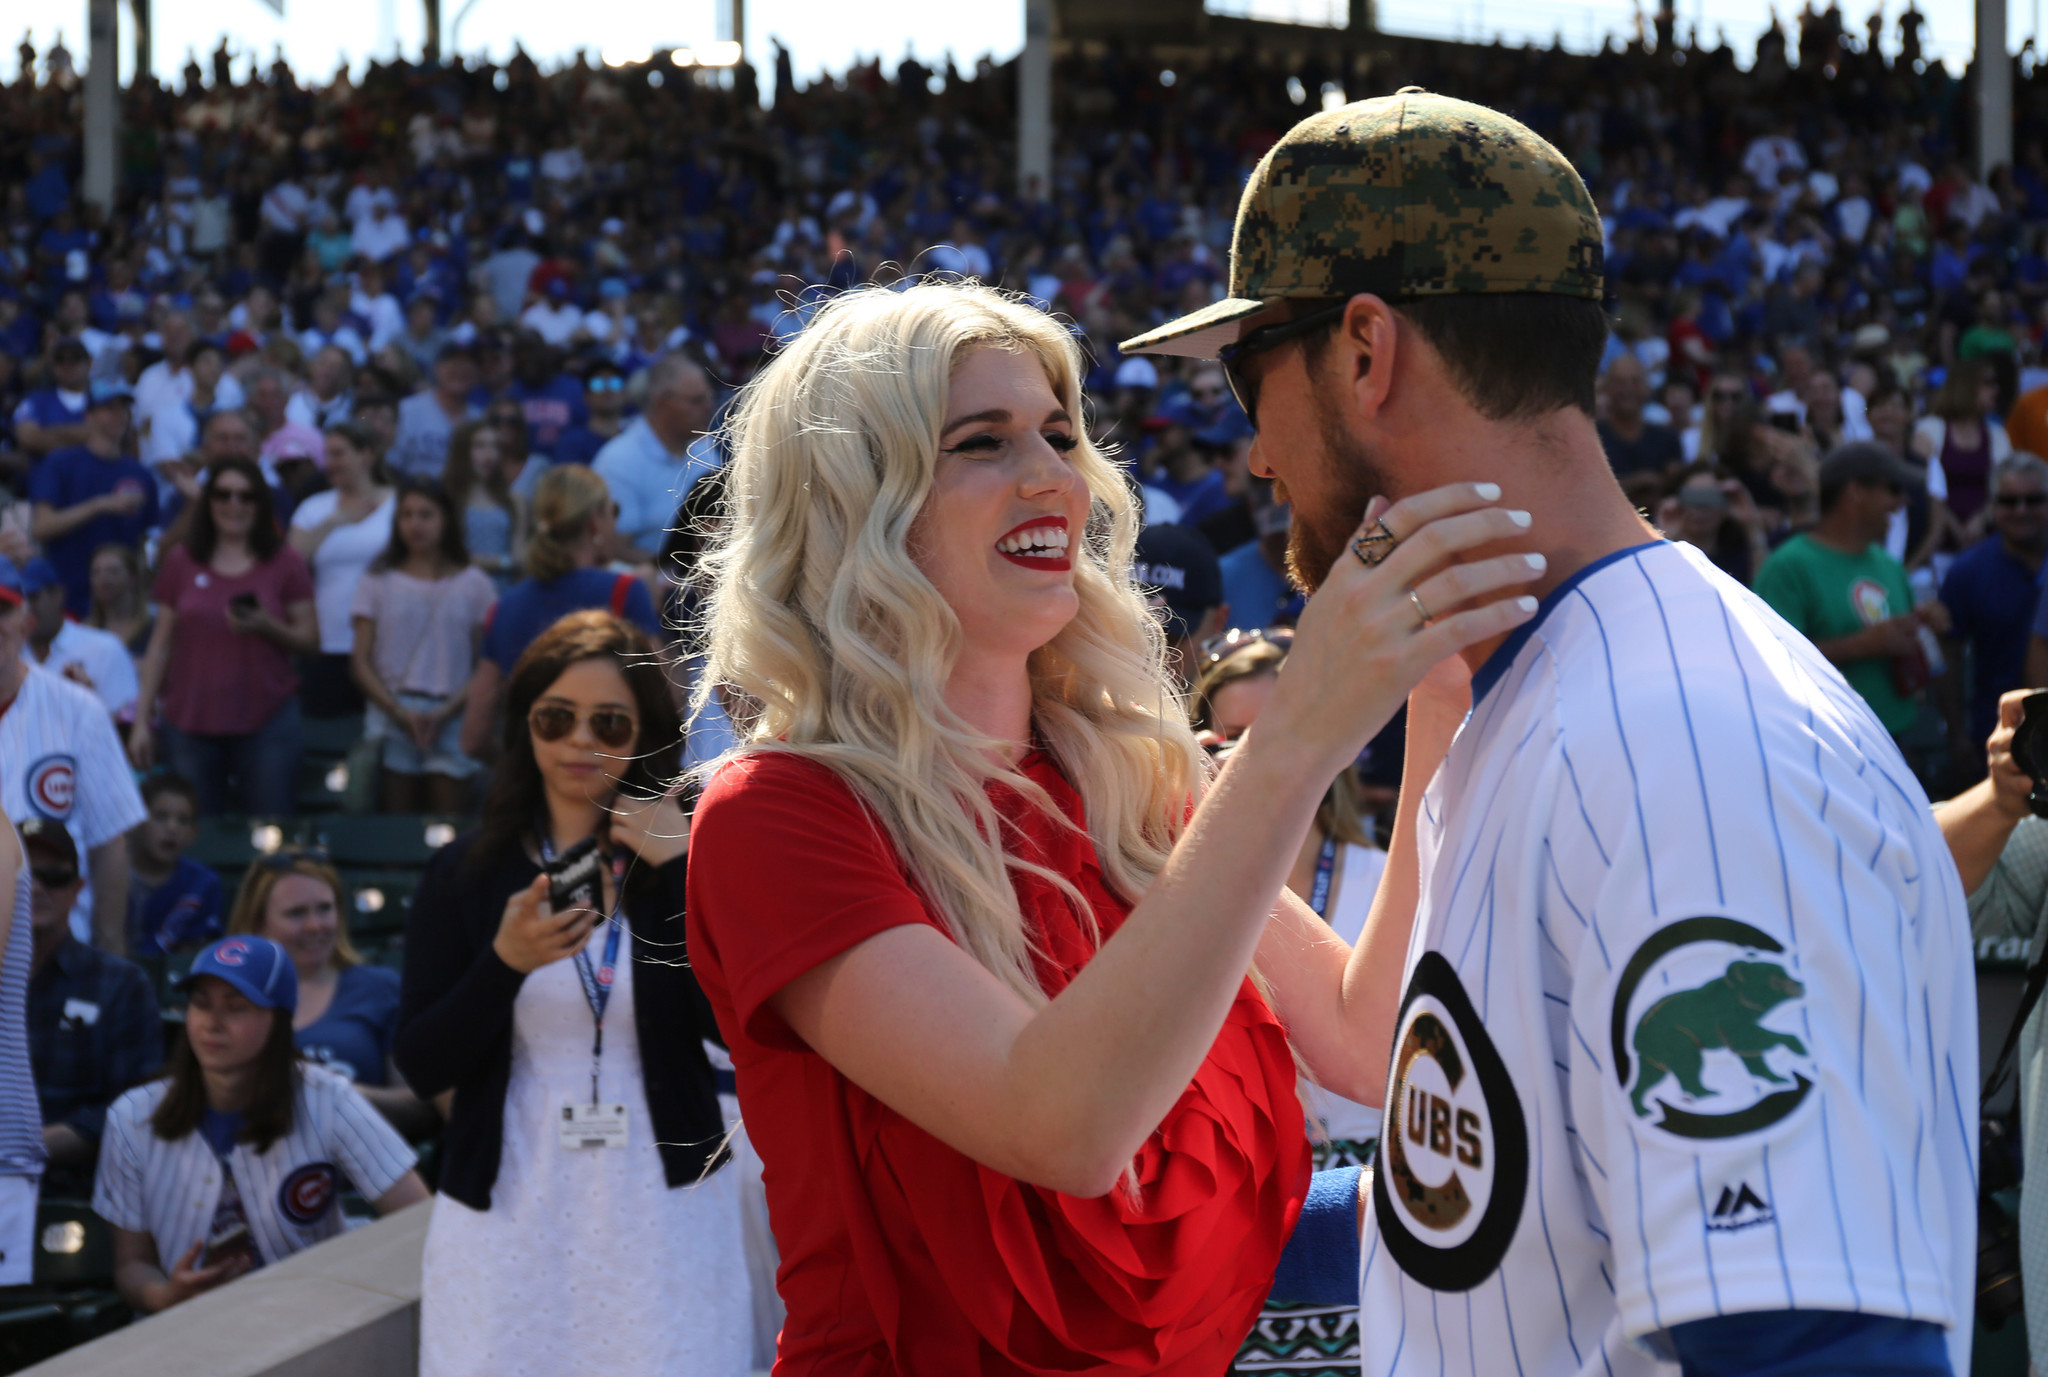 'I am still here': Julianna Zobrist thanks supporters on Instagram for 'honoring the most intimate spaces of our pain'